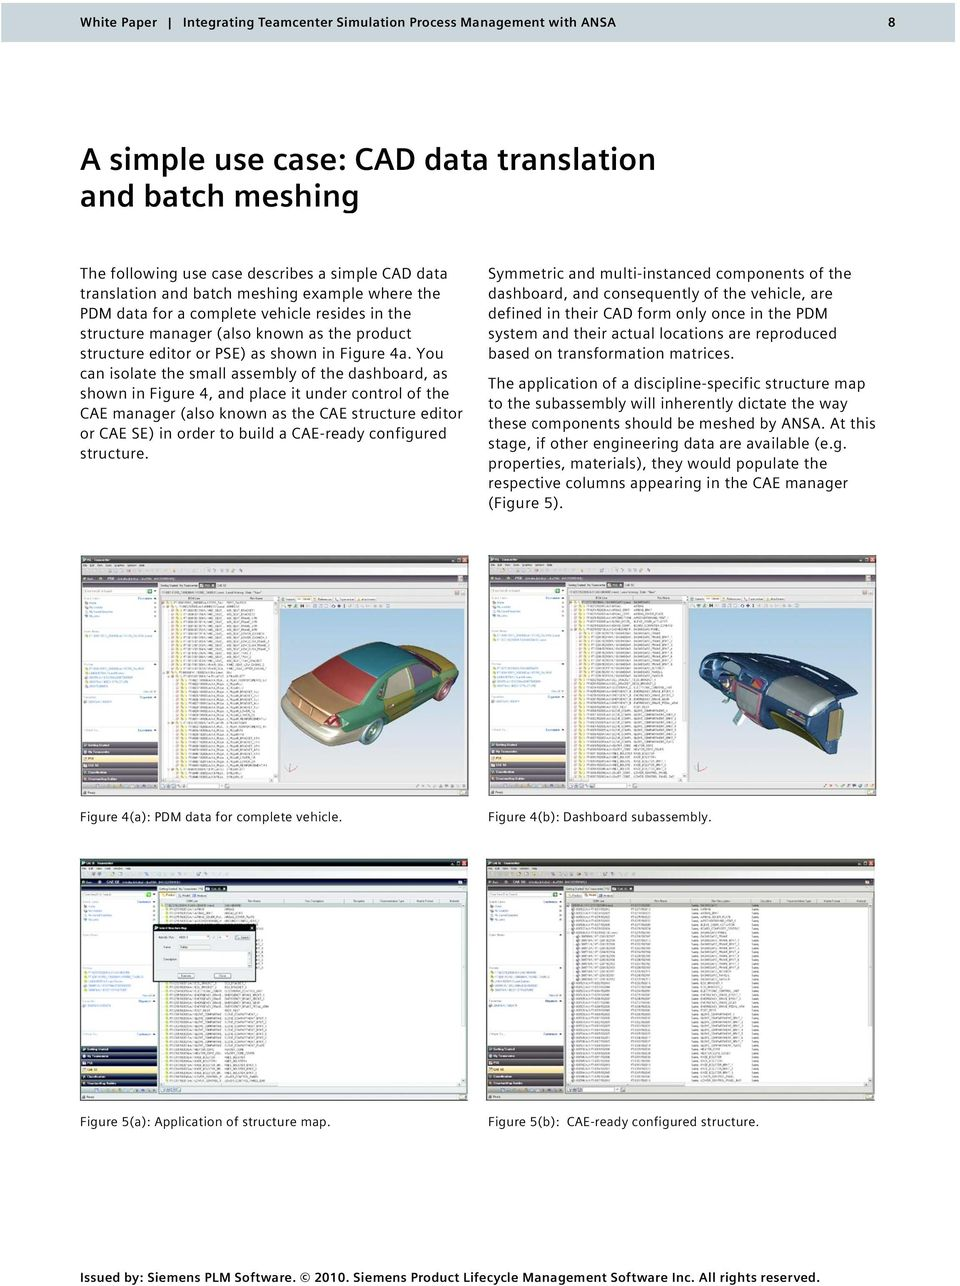 You can isolate the small assembly of the dashboard, as shown in Figure 4, and place it under control of the CAE manager (also known as the CAE structure editor or CAE SE) in order to build a